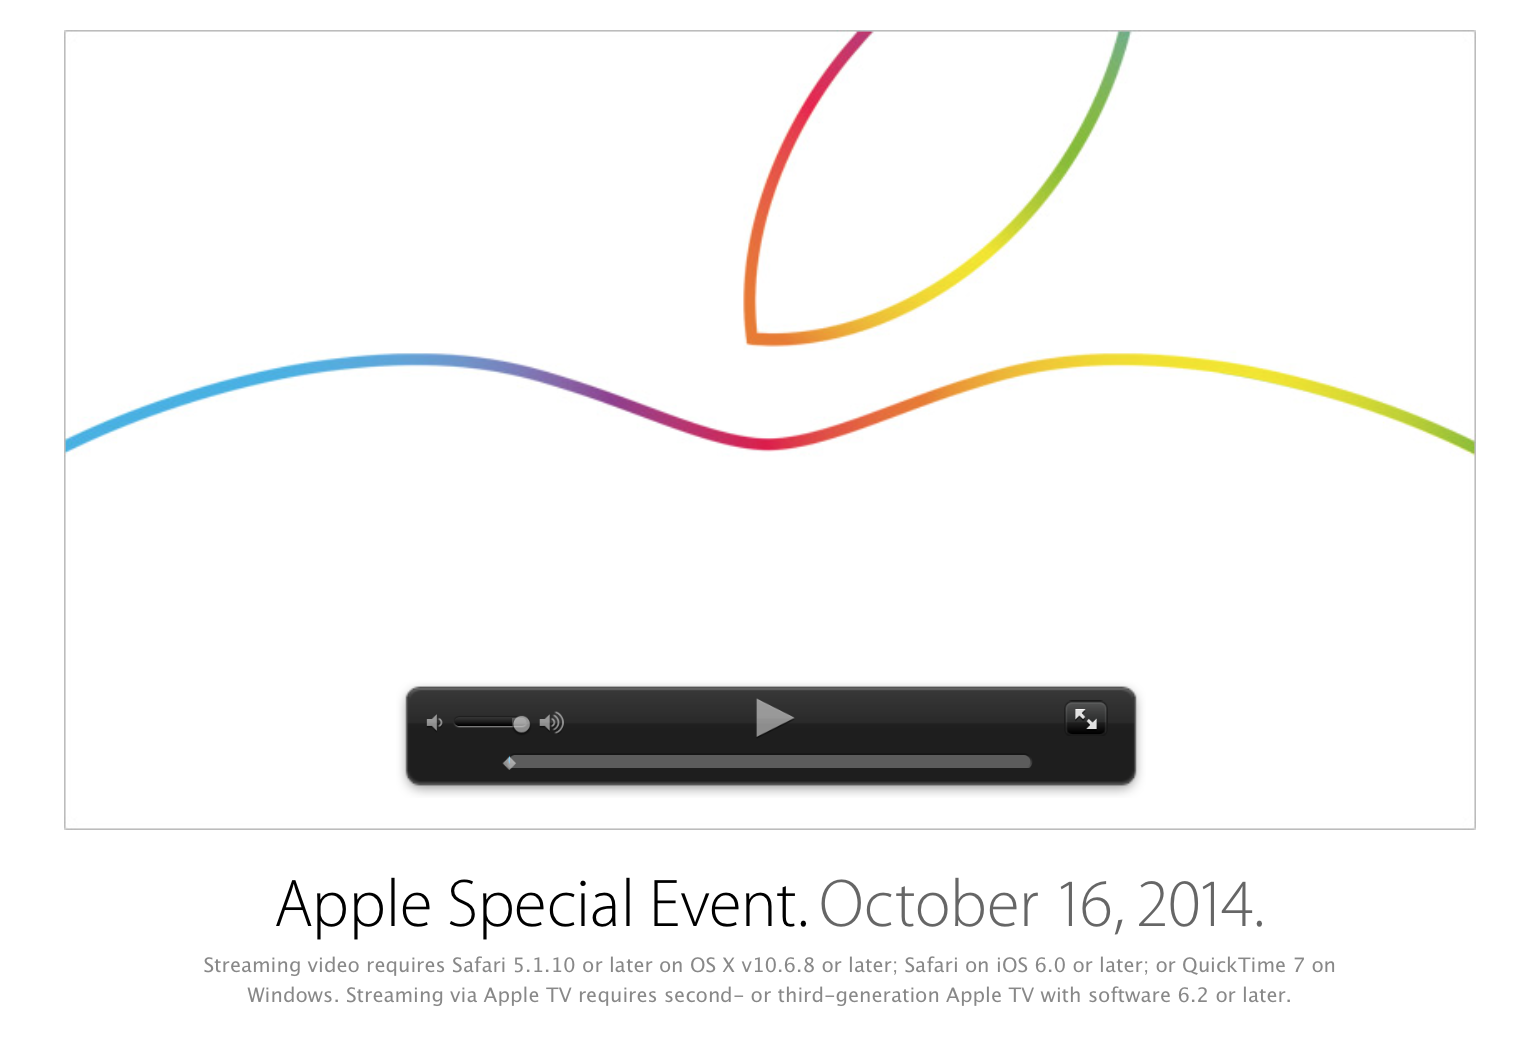 Watch Apple's Special iPad and Mac event full video